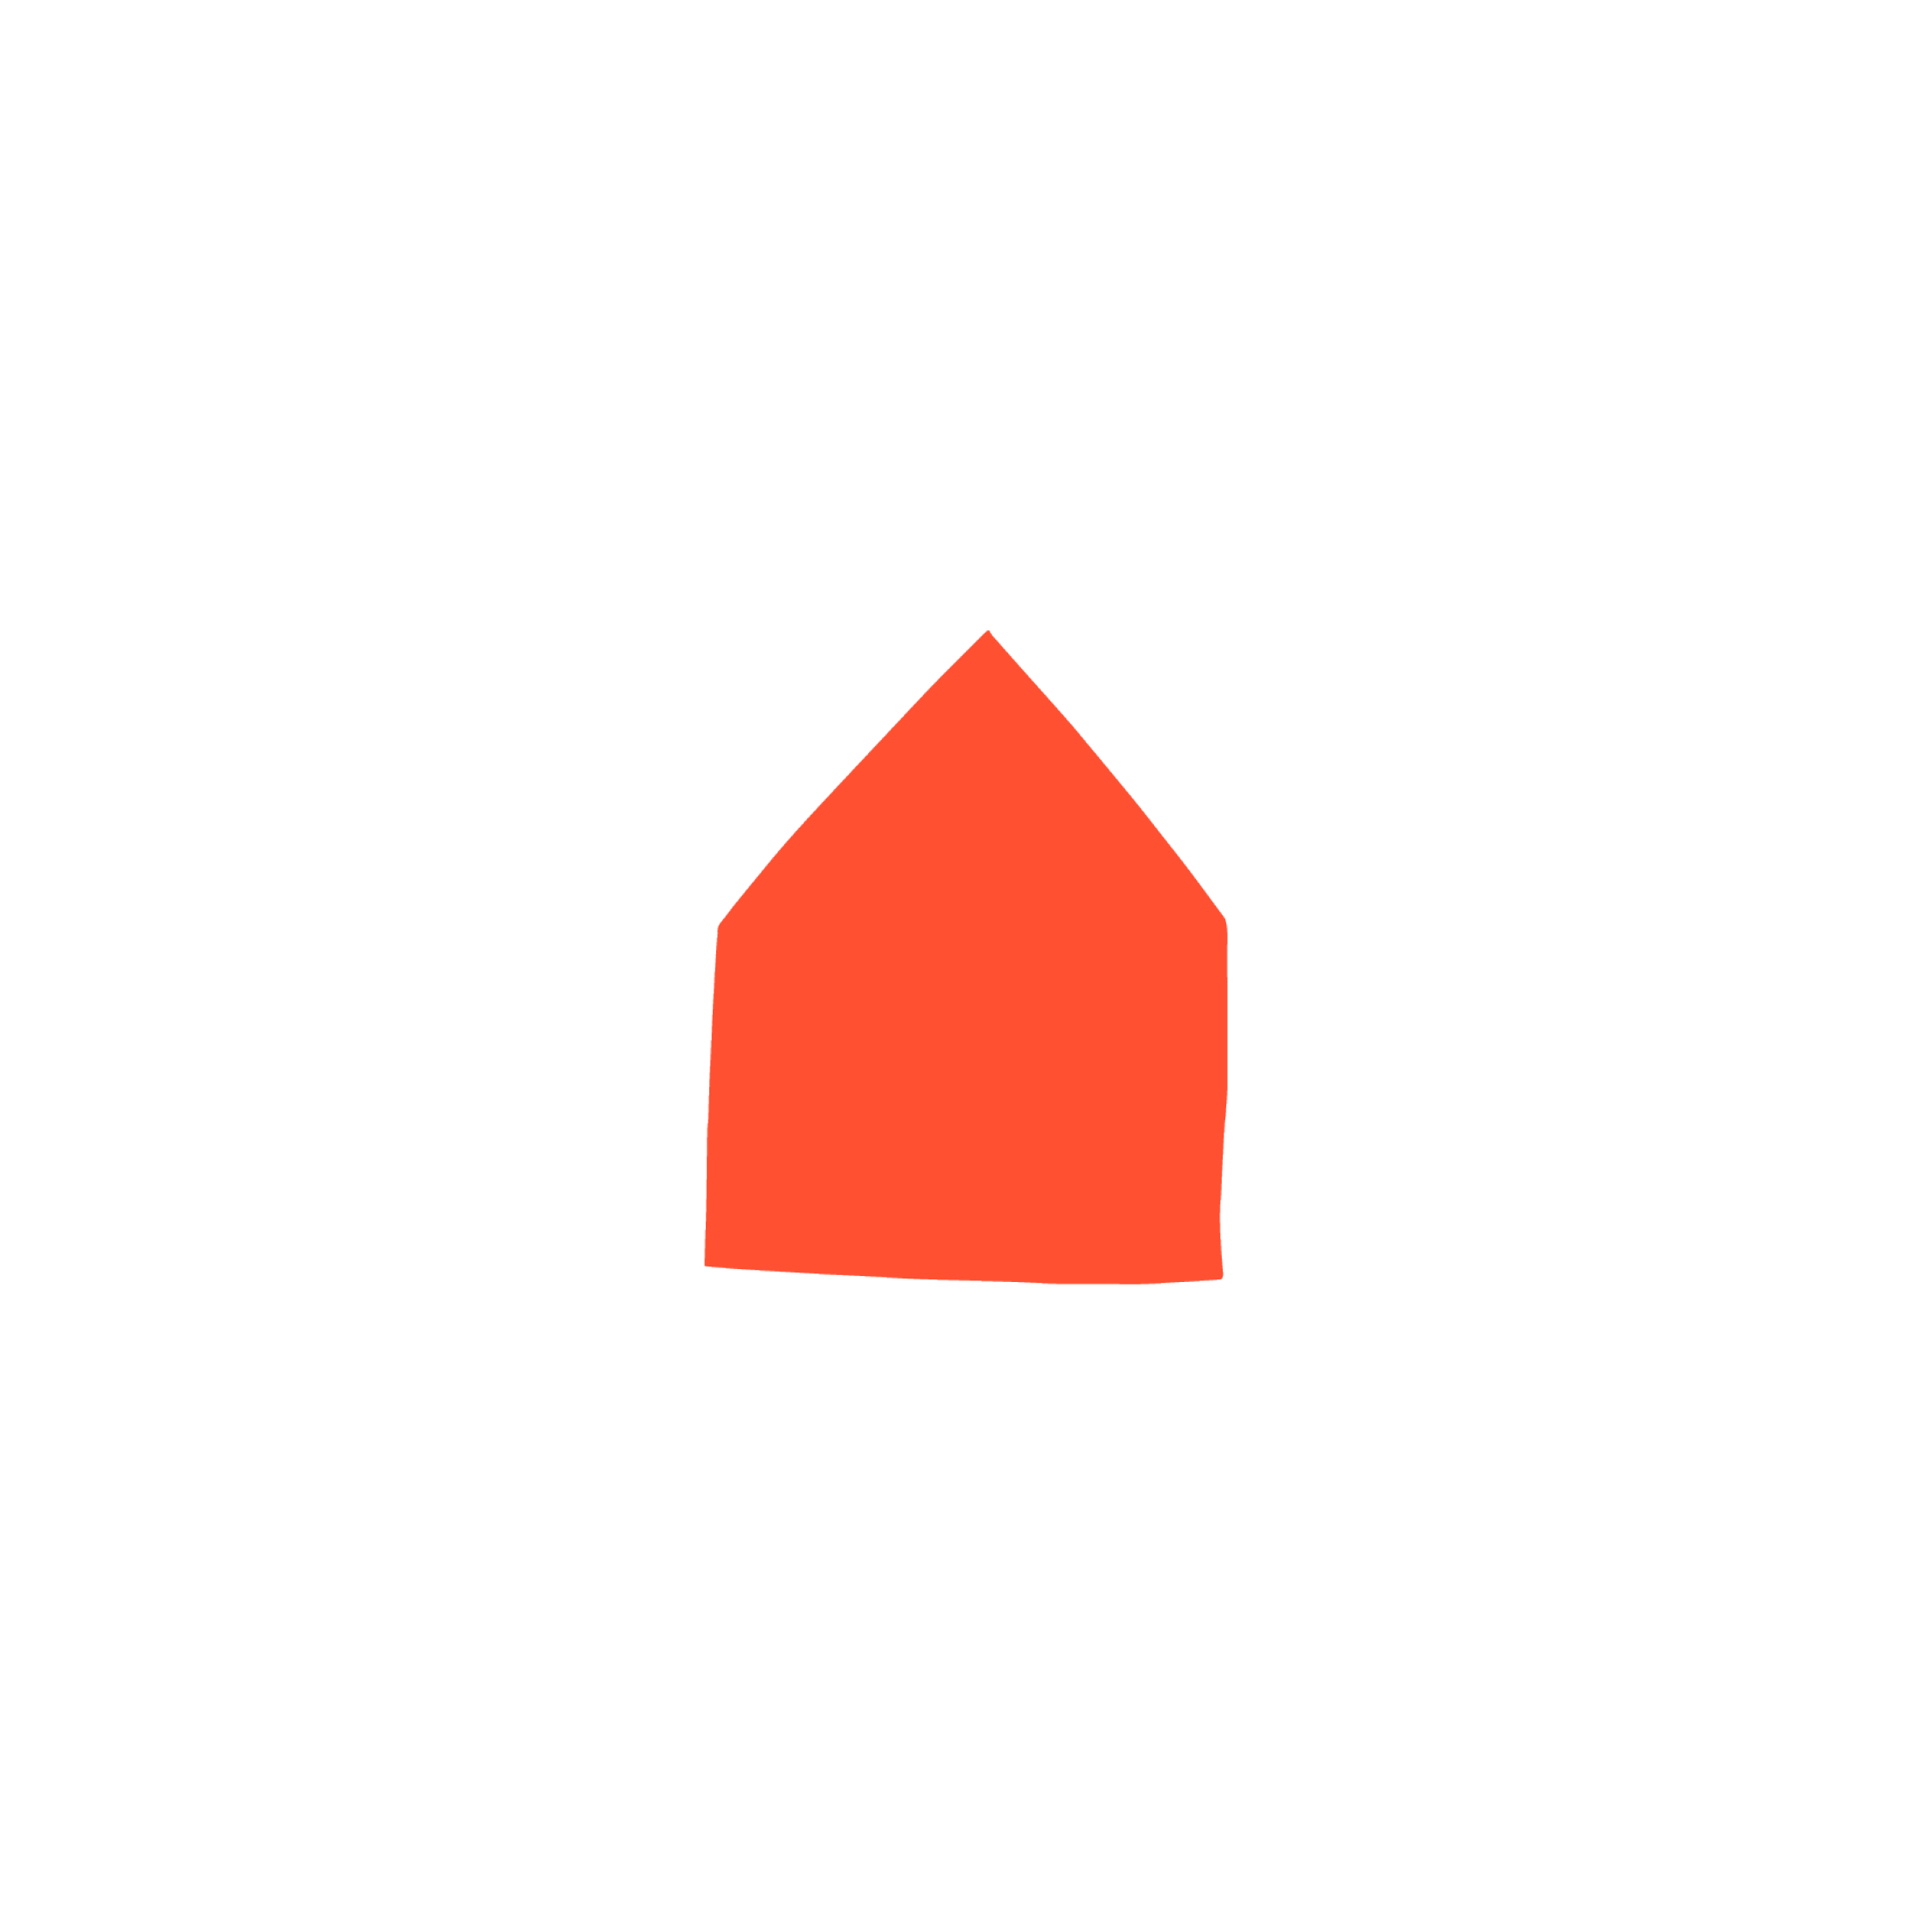 red house footer icon PNG.png